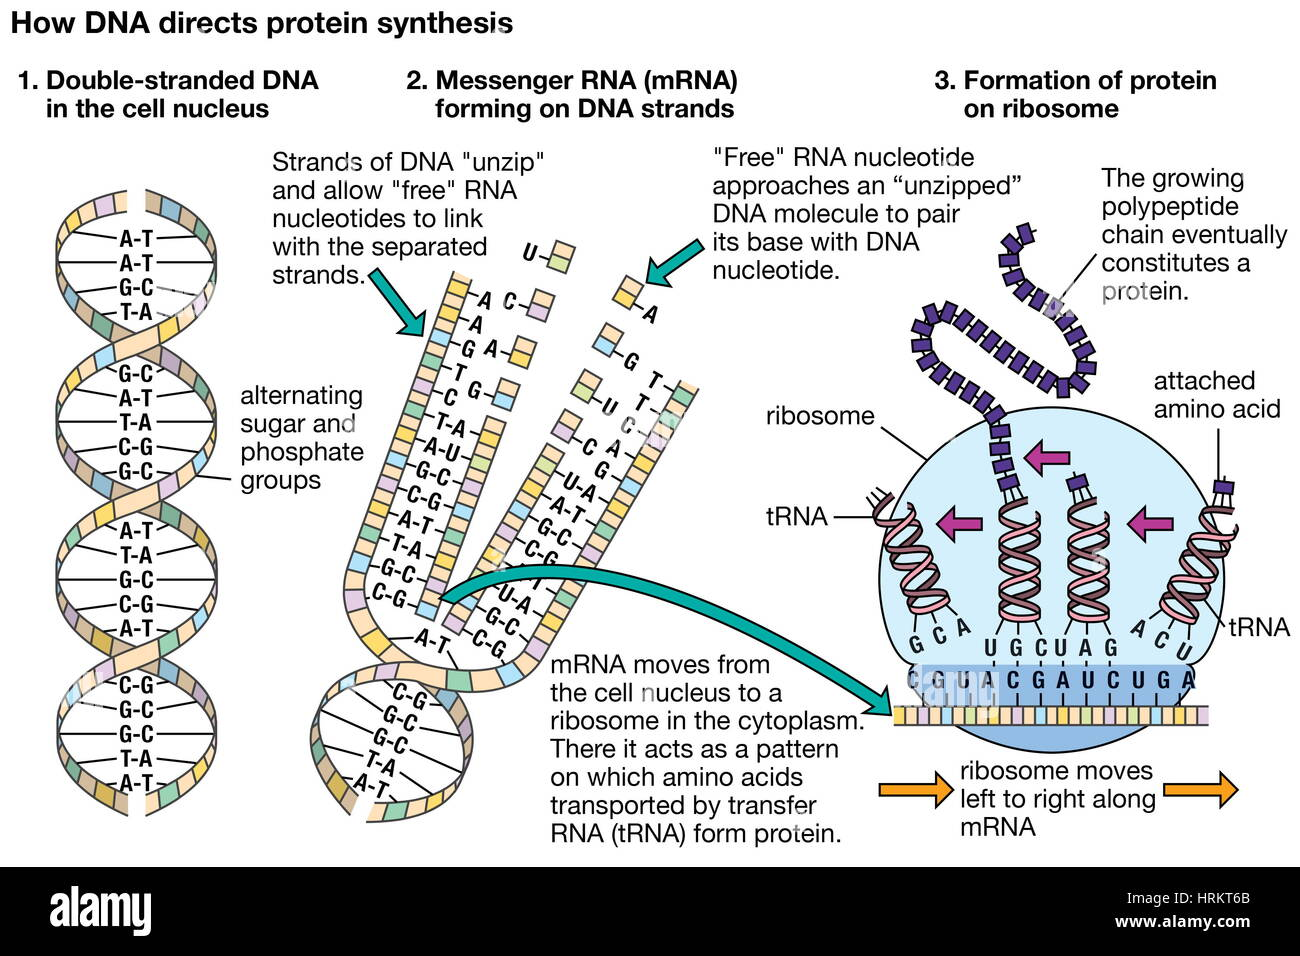 How DNA directs protein synthesis. genetics - Stock Image